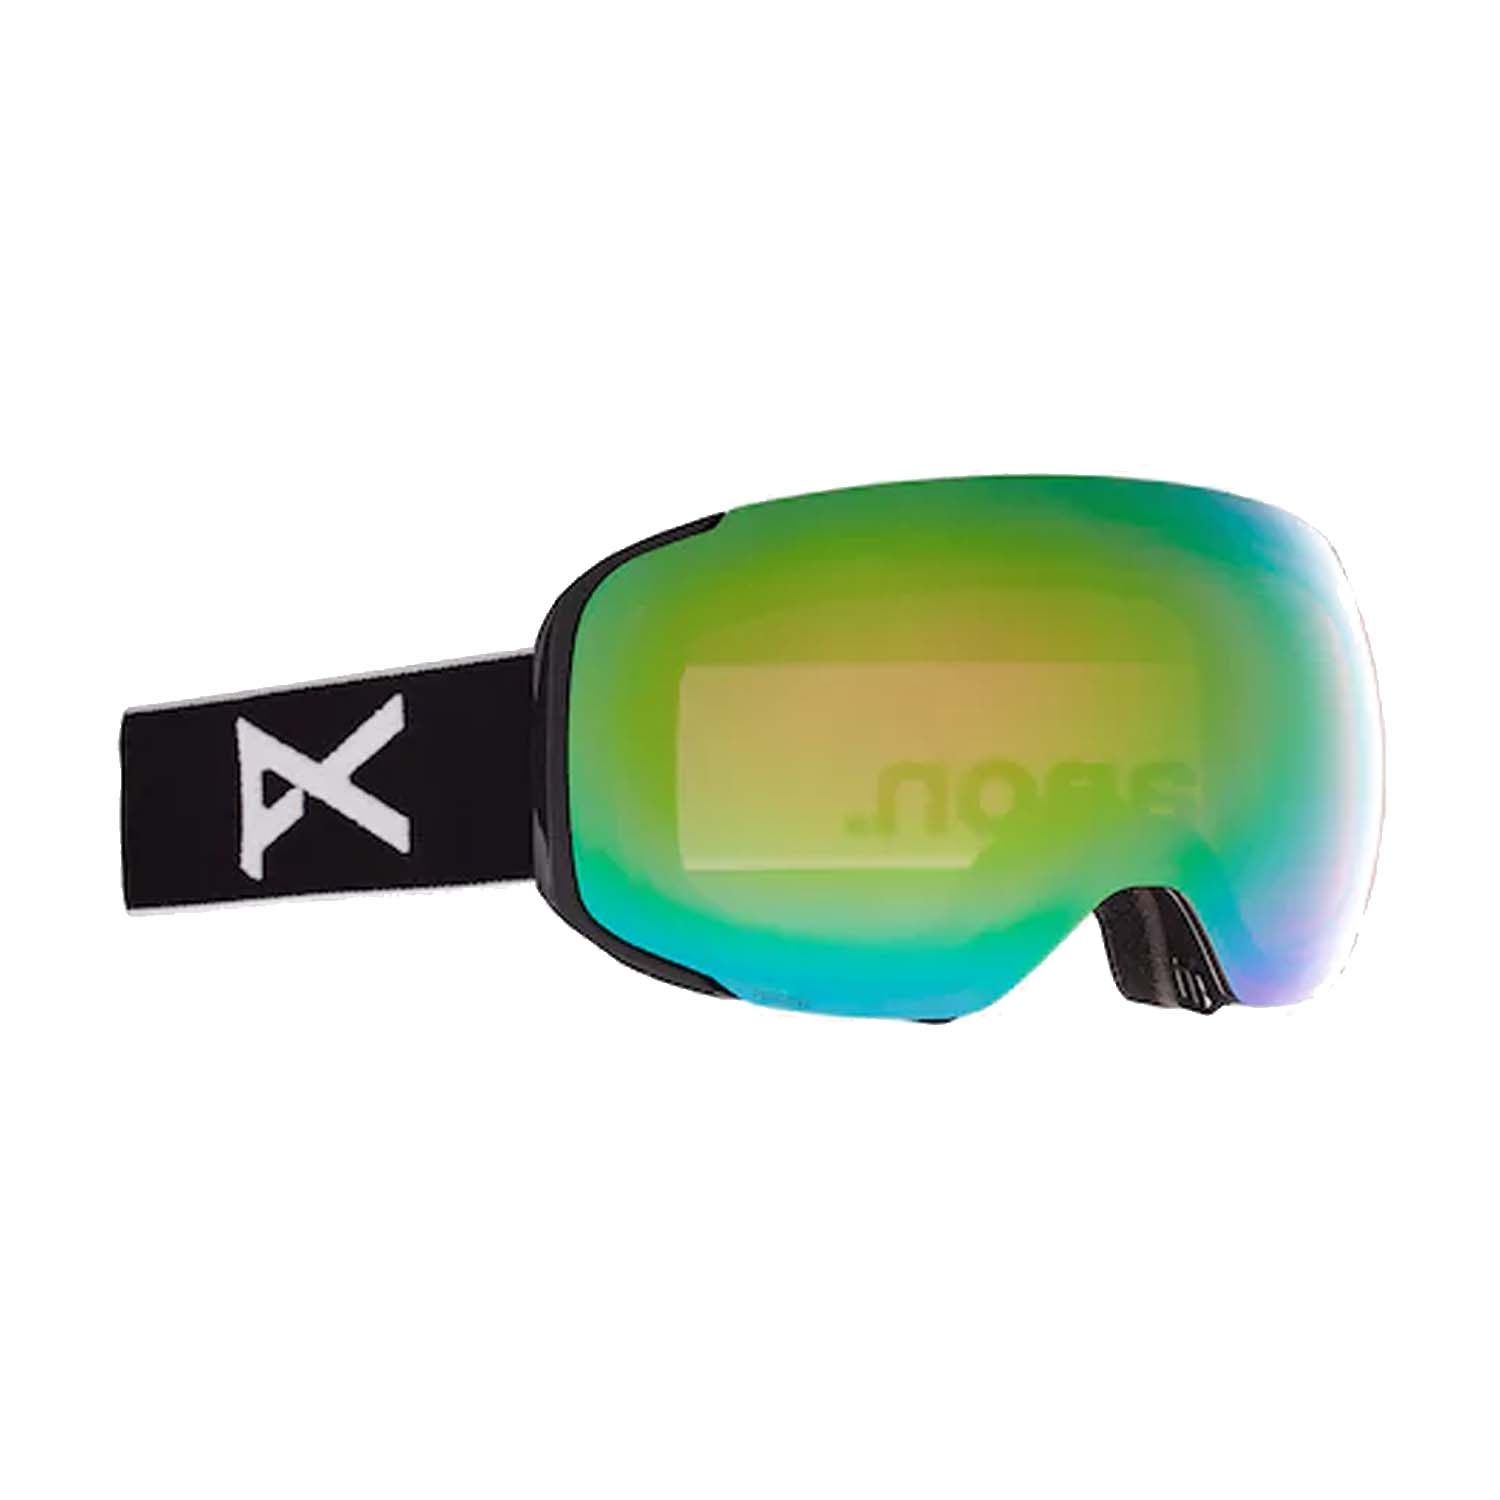 Anon M2 Goggles Black/Perceive Variable Green Lens 2021